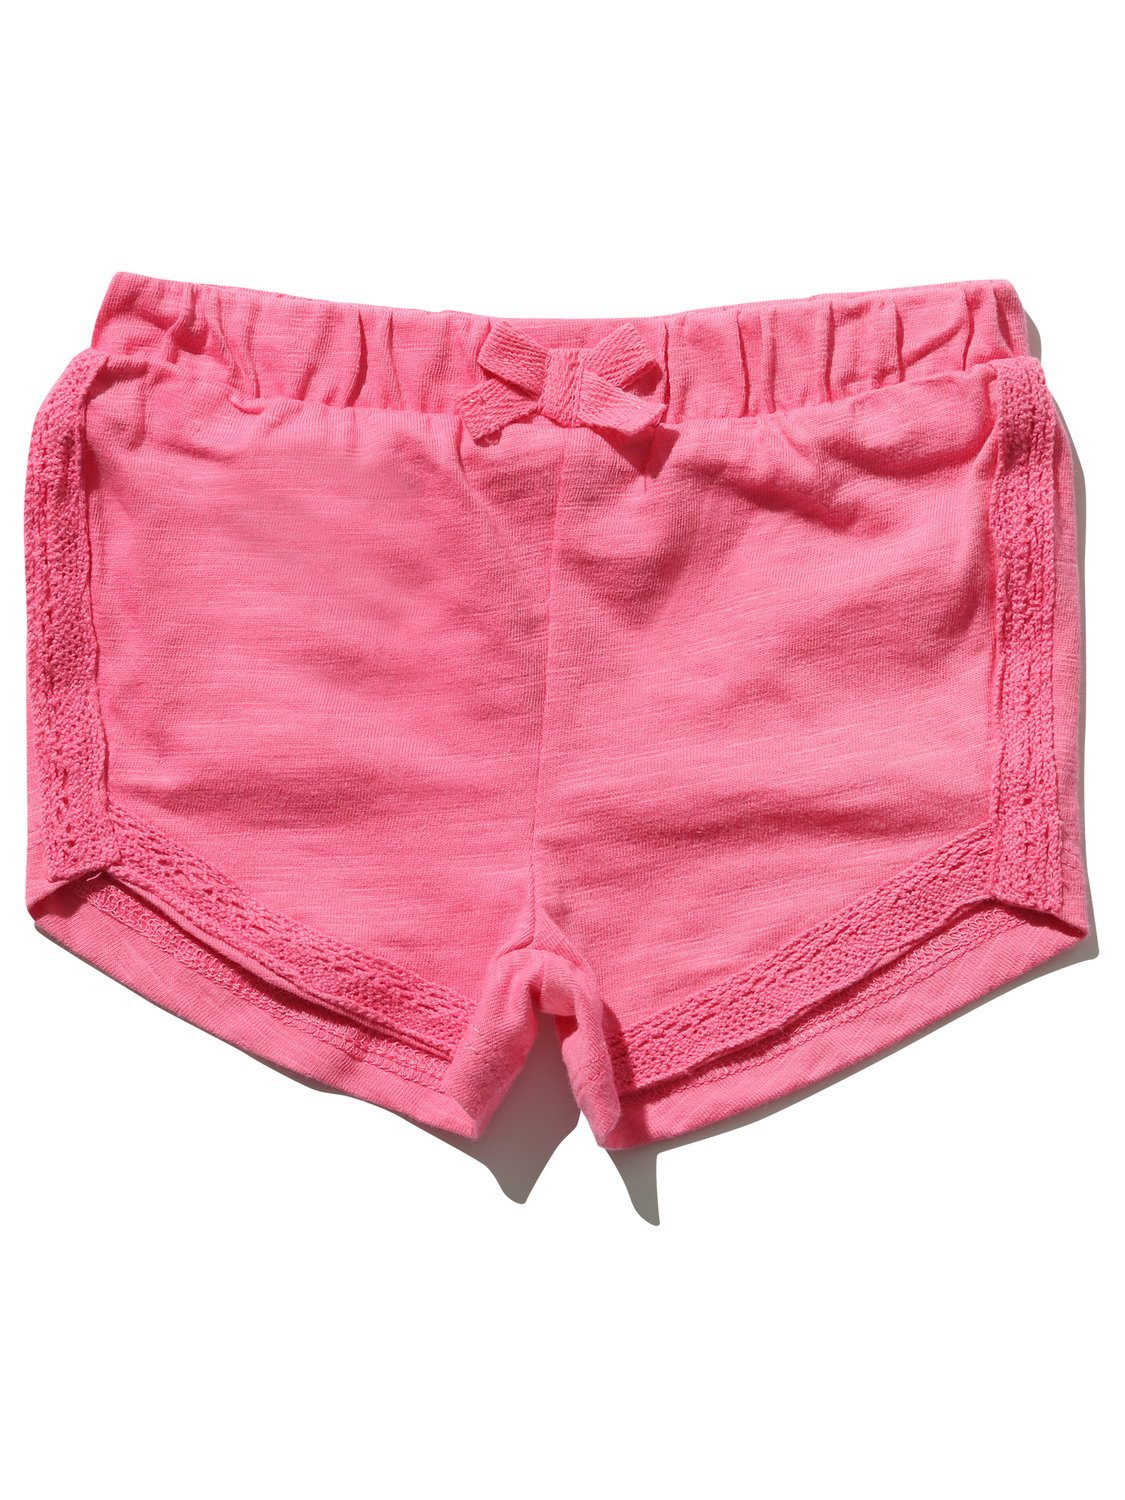 M&Co Baby Girl 100% Cotton Plain Pink Lace Trim Elasticated Waistband Back Pocket Detail Shorts